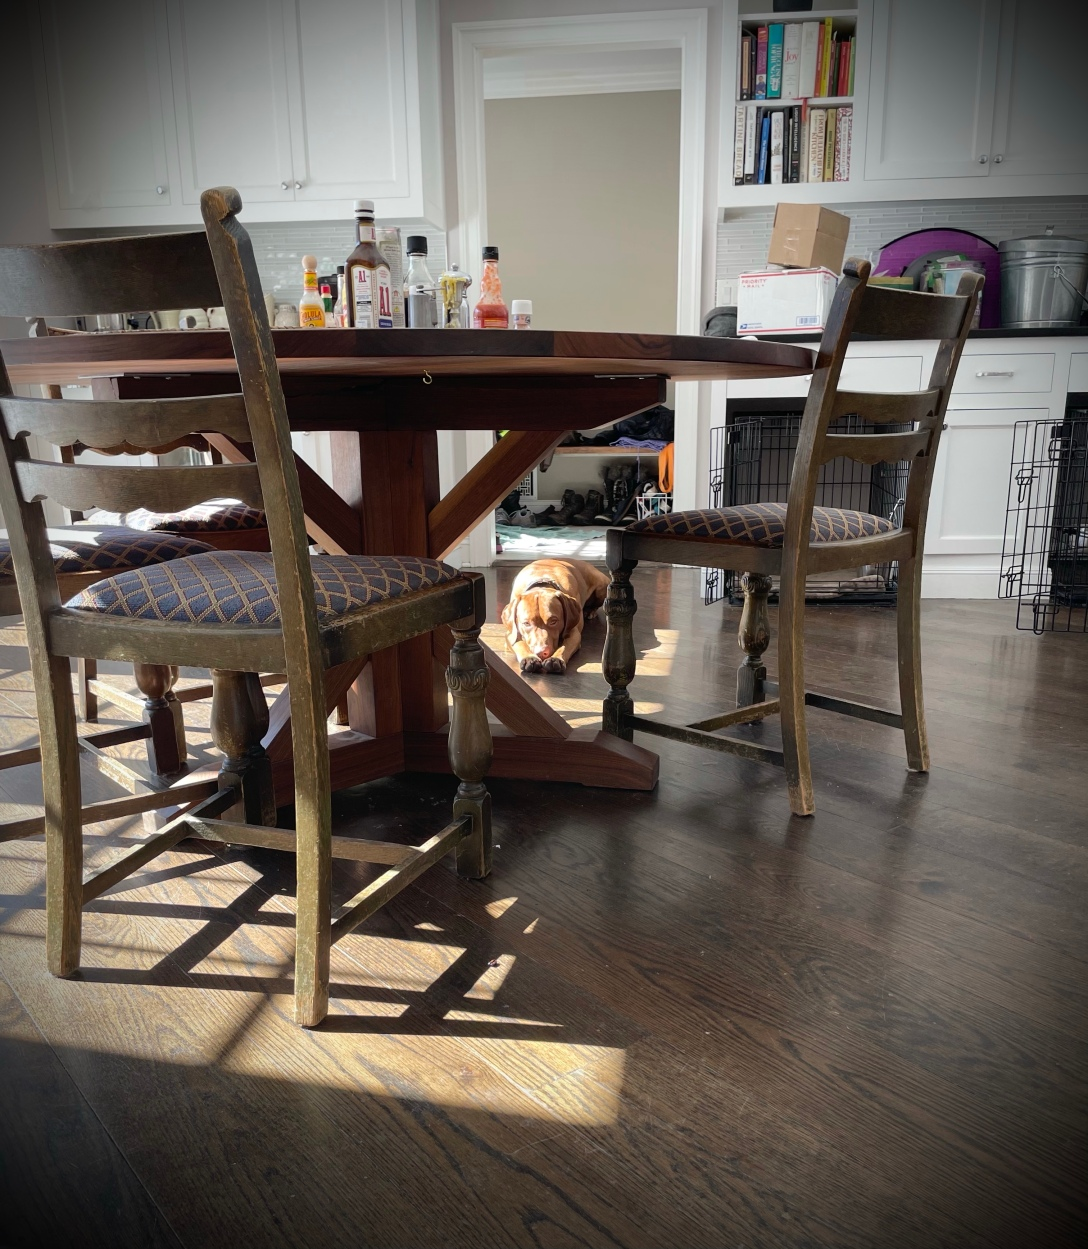 Vizsla in the kitchen, seen through the chairs